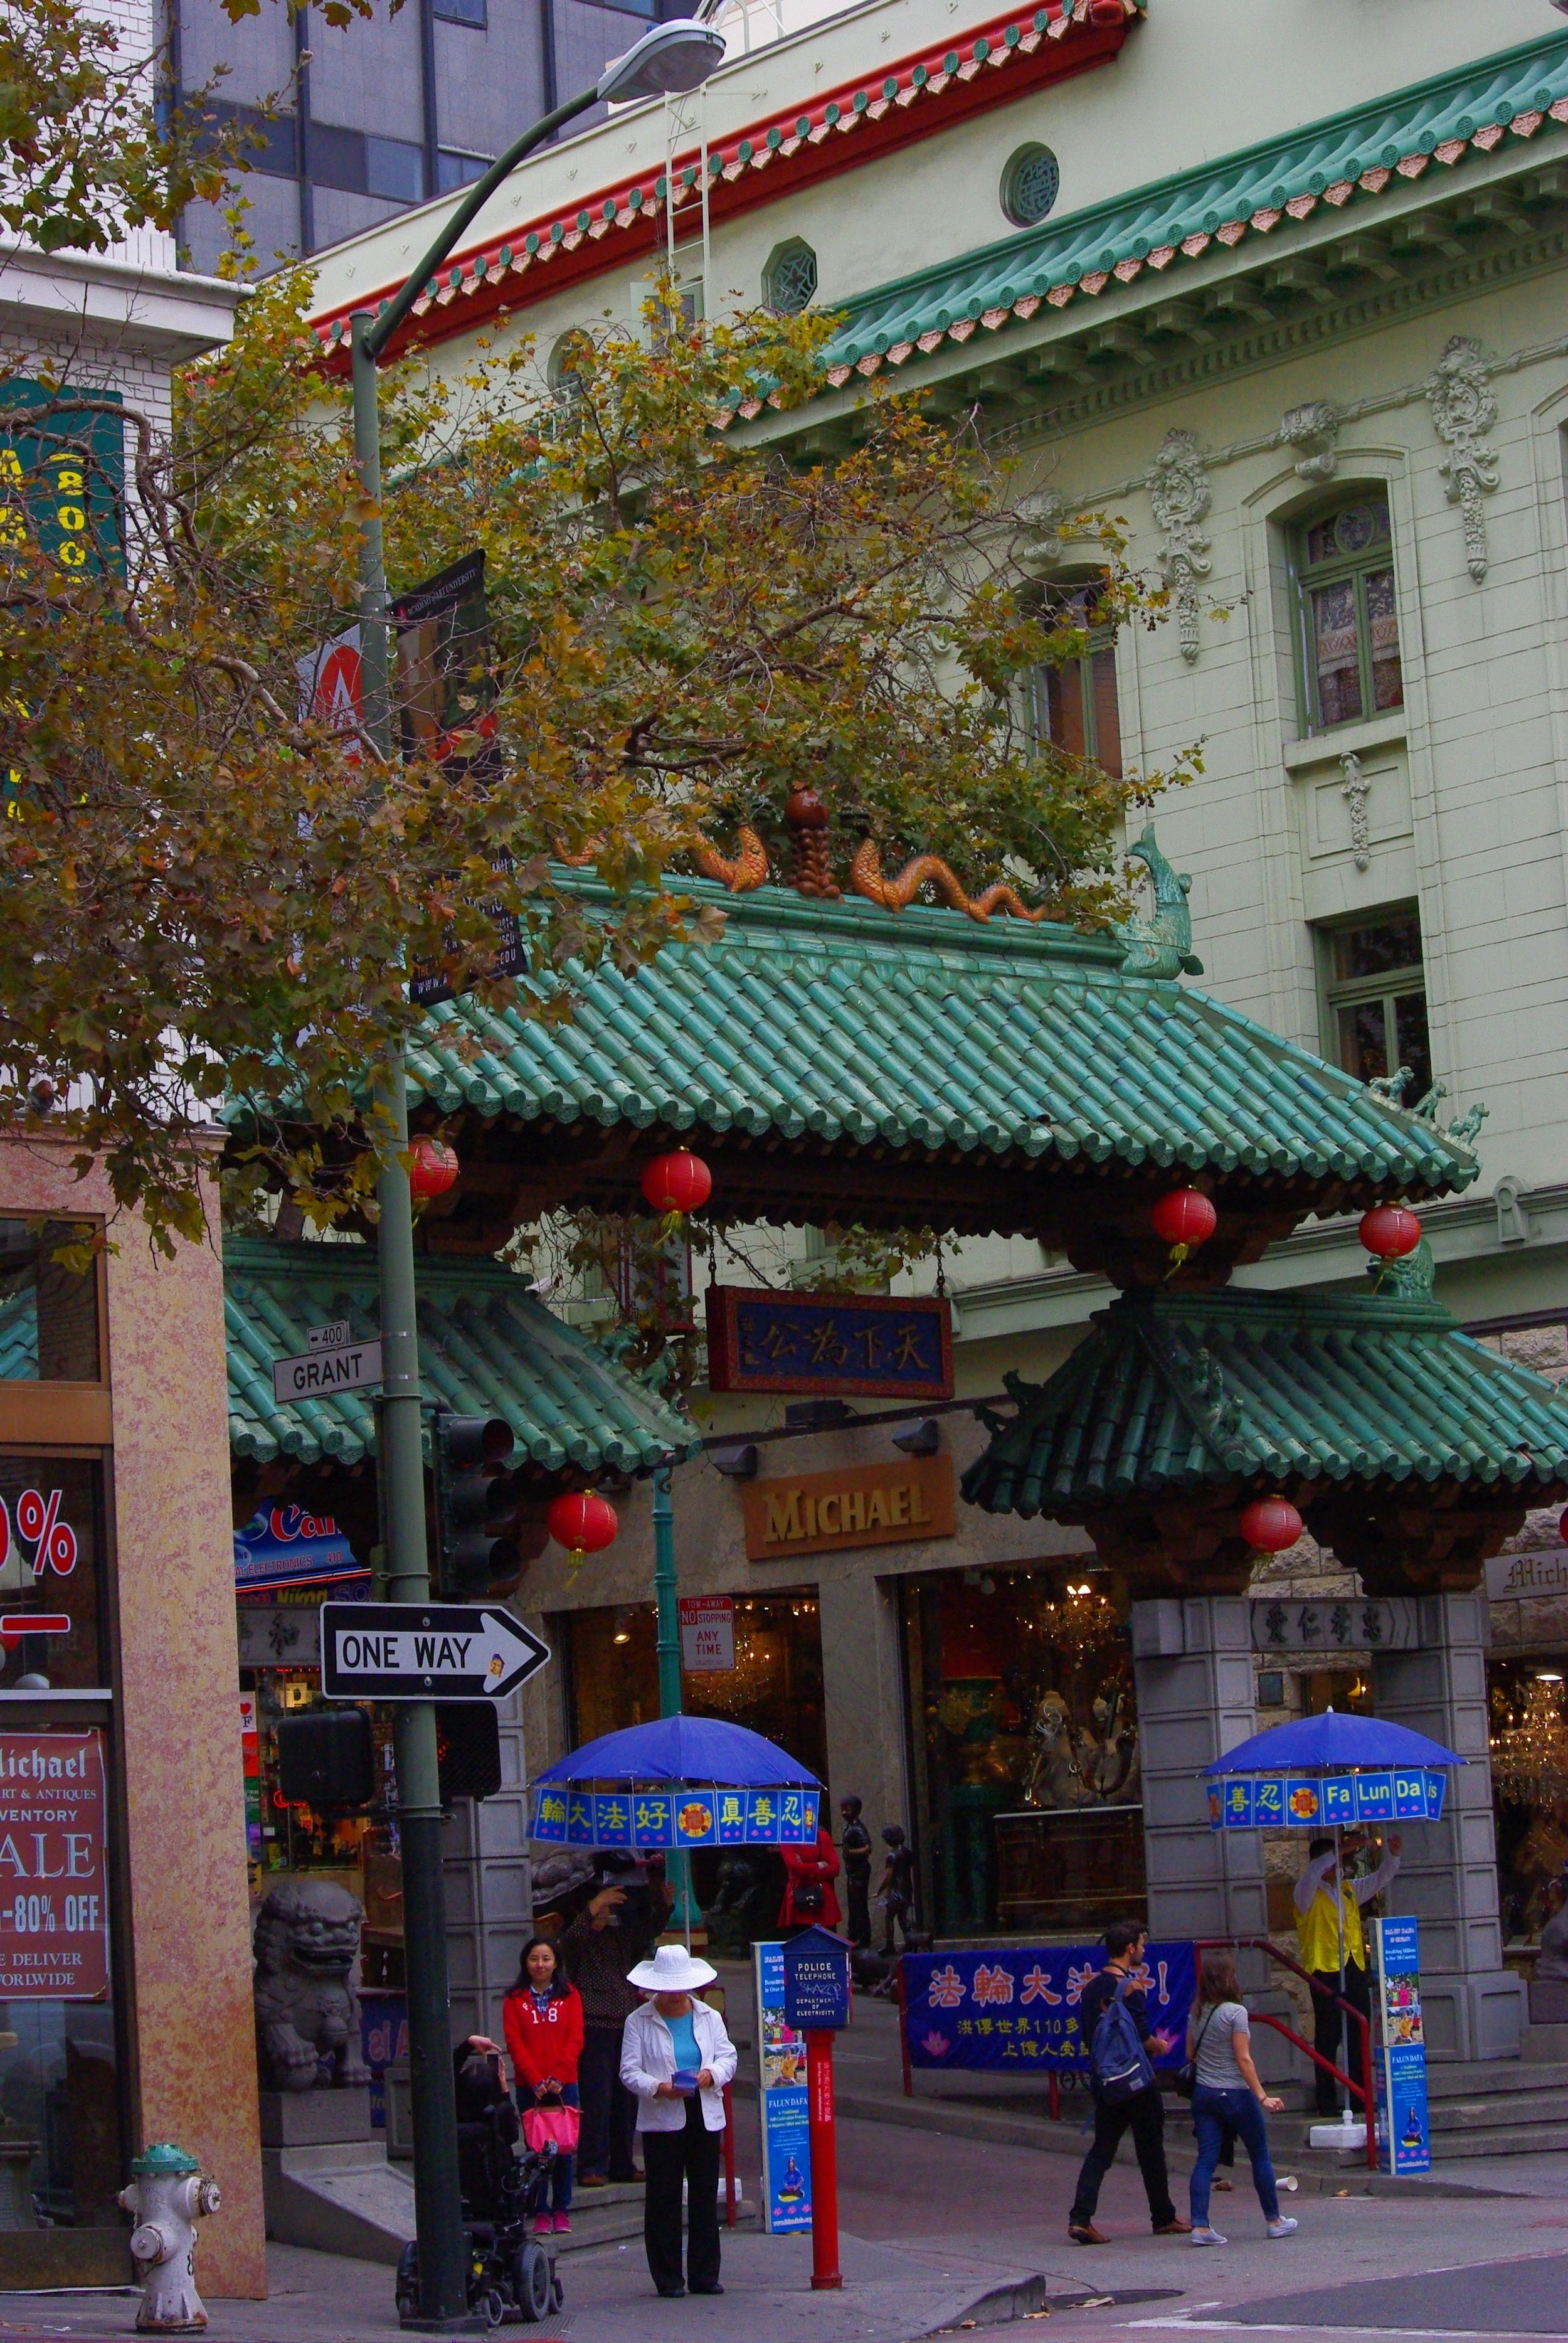 5.Dine in the oldest Chinatown